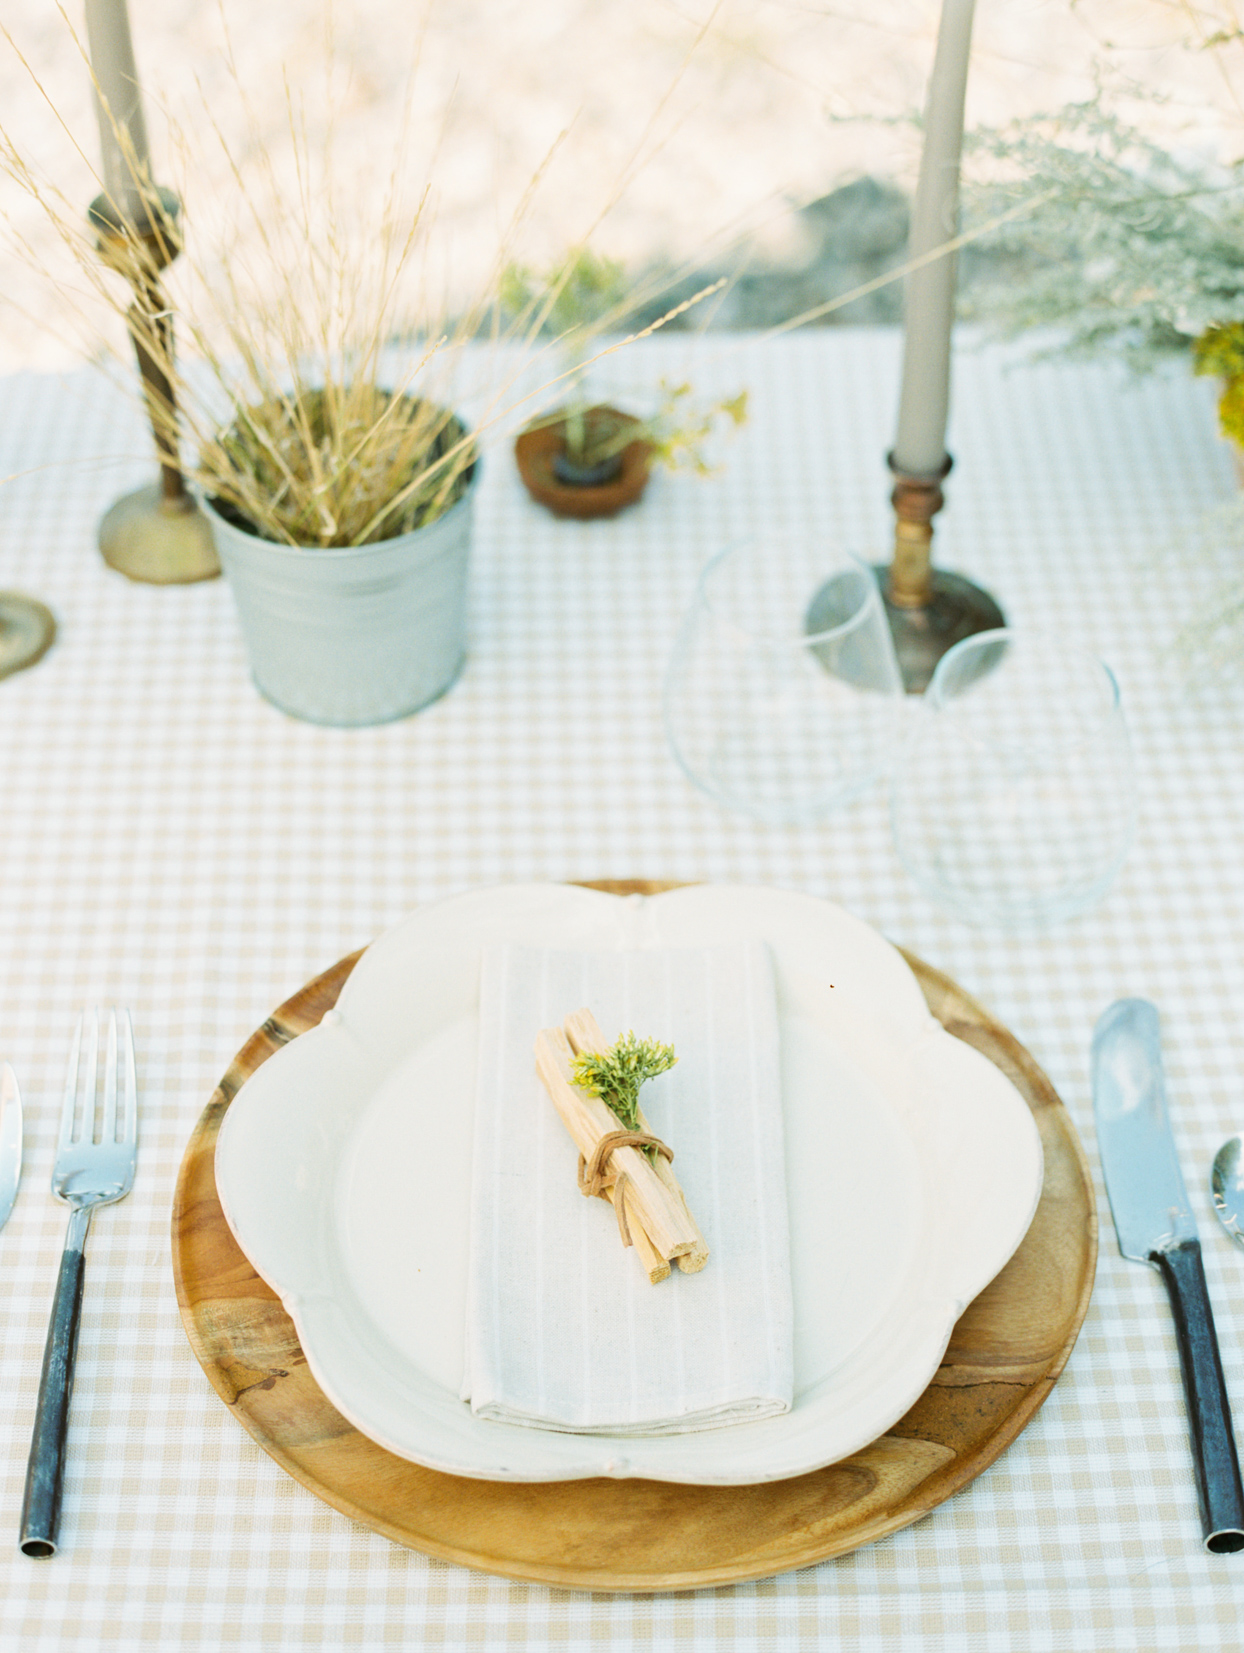 elegant rustic wedding place setting with plaid table cloth